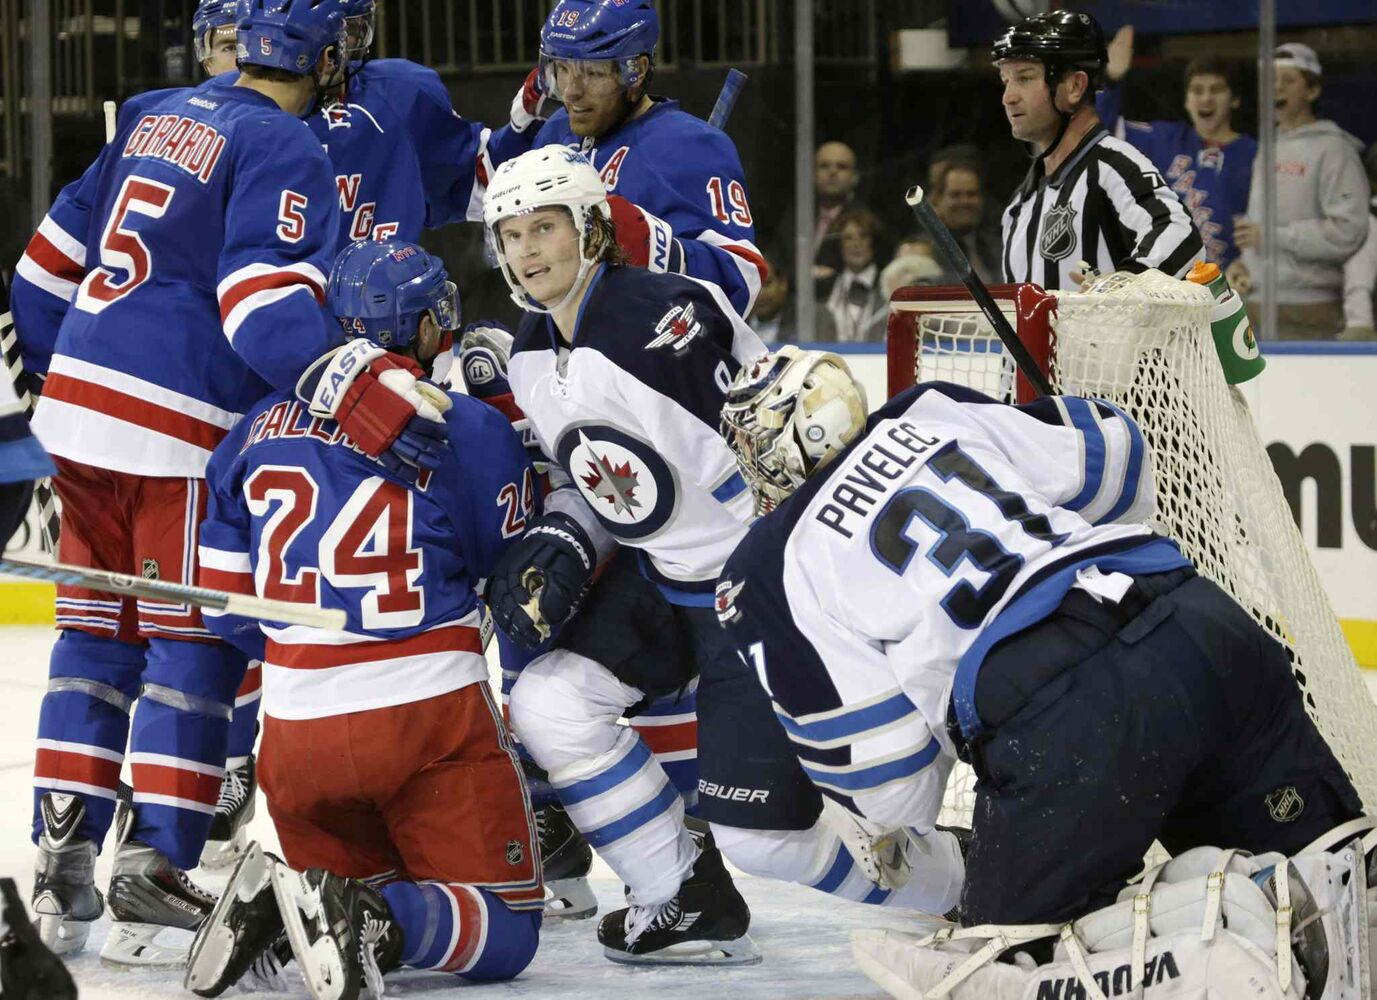 New York Rangers' Dan Girardi (5) congratulates Rangers right-winger Ryan Callahan (24) after Callahan scored a goal on Winnipeg Jets goalie Ondrej Pavelec in the second period. Jets defenceman Jacob Trouba (8) watches the replay on the scoreboard. (KATHY WILLENS / THE ASSOCIATED PRESS)